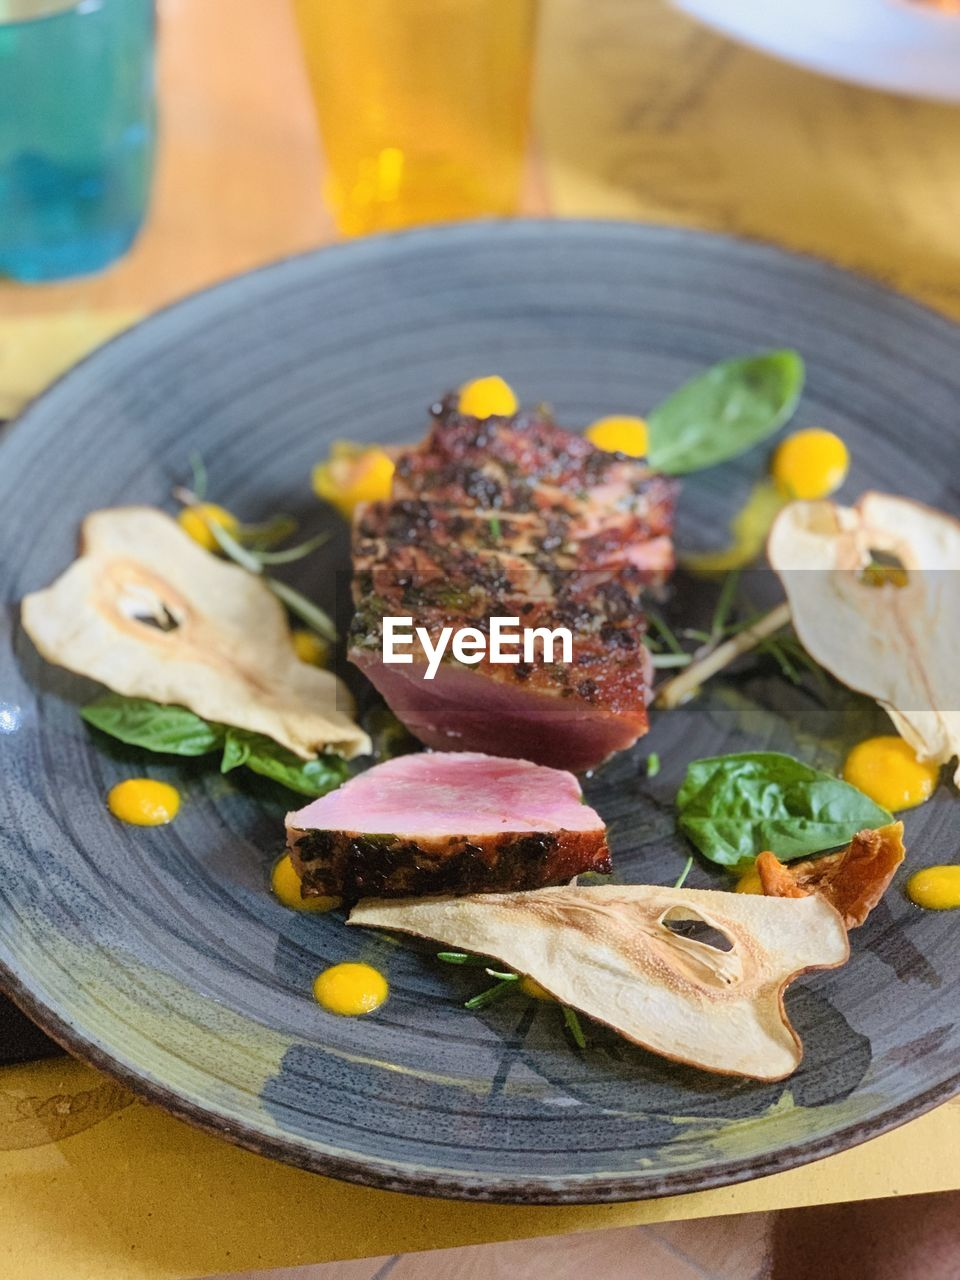 food, food and drink, plate, freshness, table, ready-to-eat, close-up, meat, no people, serving size, indoors, vegetable, still life, wood - material, meal, healthy eating, indulgence, focus on foreground, high angle view, selective focus, herb, garnish, temptation